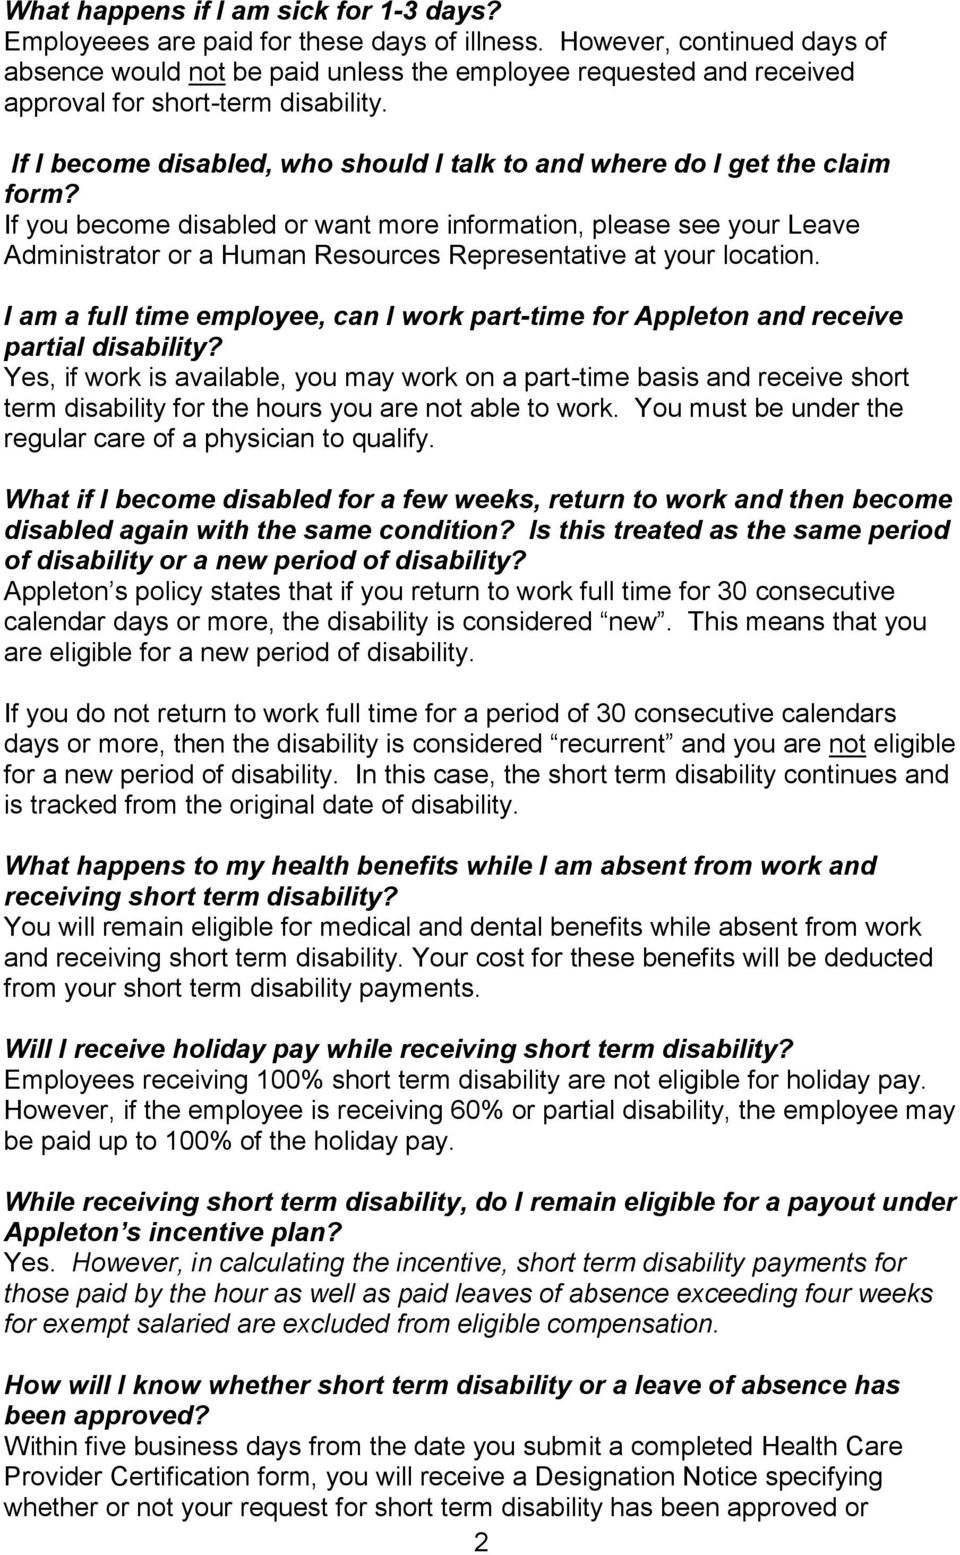 If I become disabled, who should I talk to and where do I get the claim form?